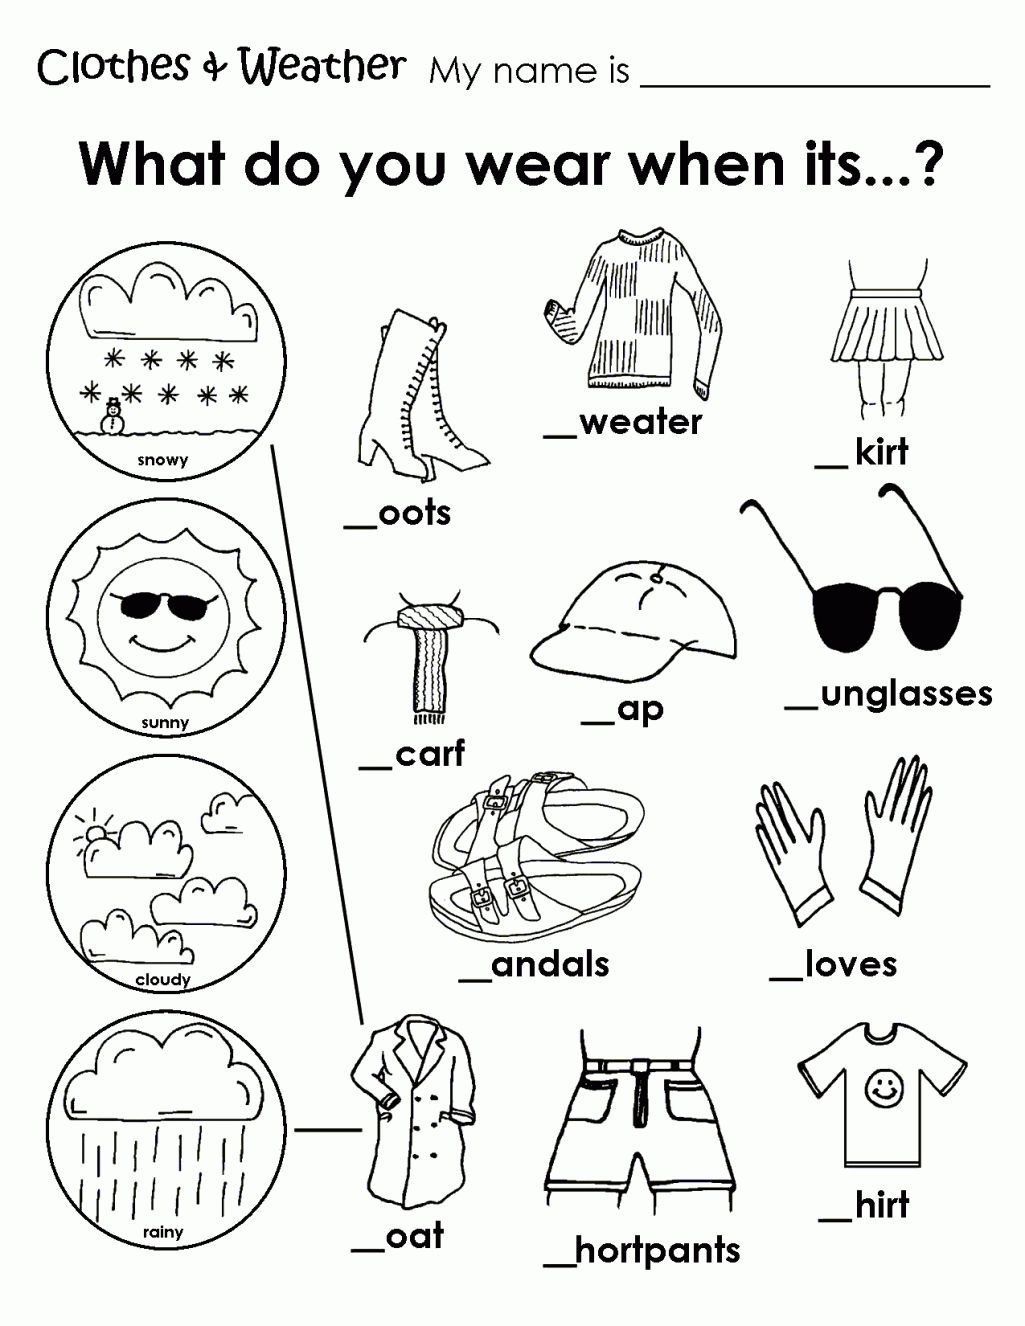 Workbooks weather expressions in spanish worksheets : Free Coloring Pages Of Clothing Worksheet Weather Coloring Sheets ...